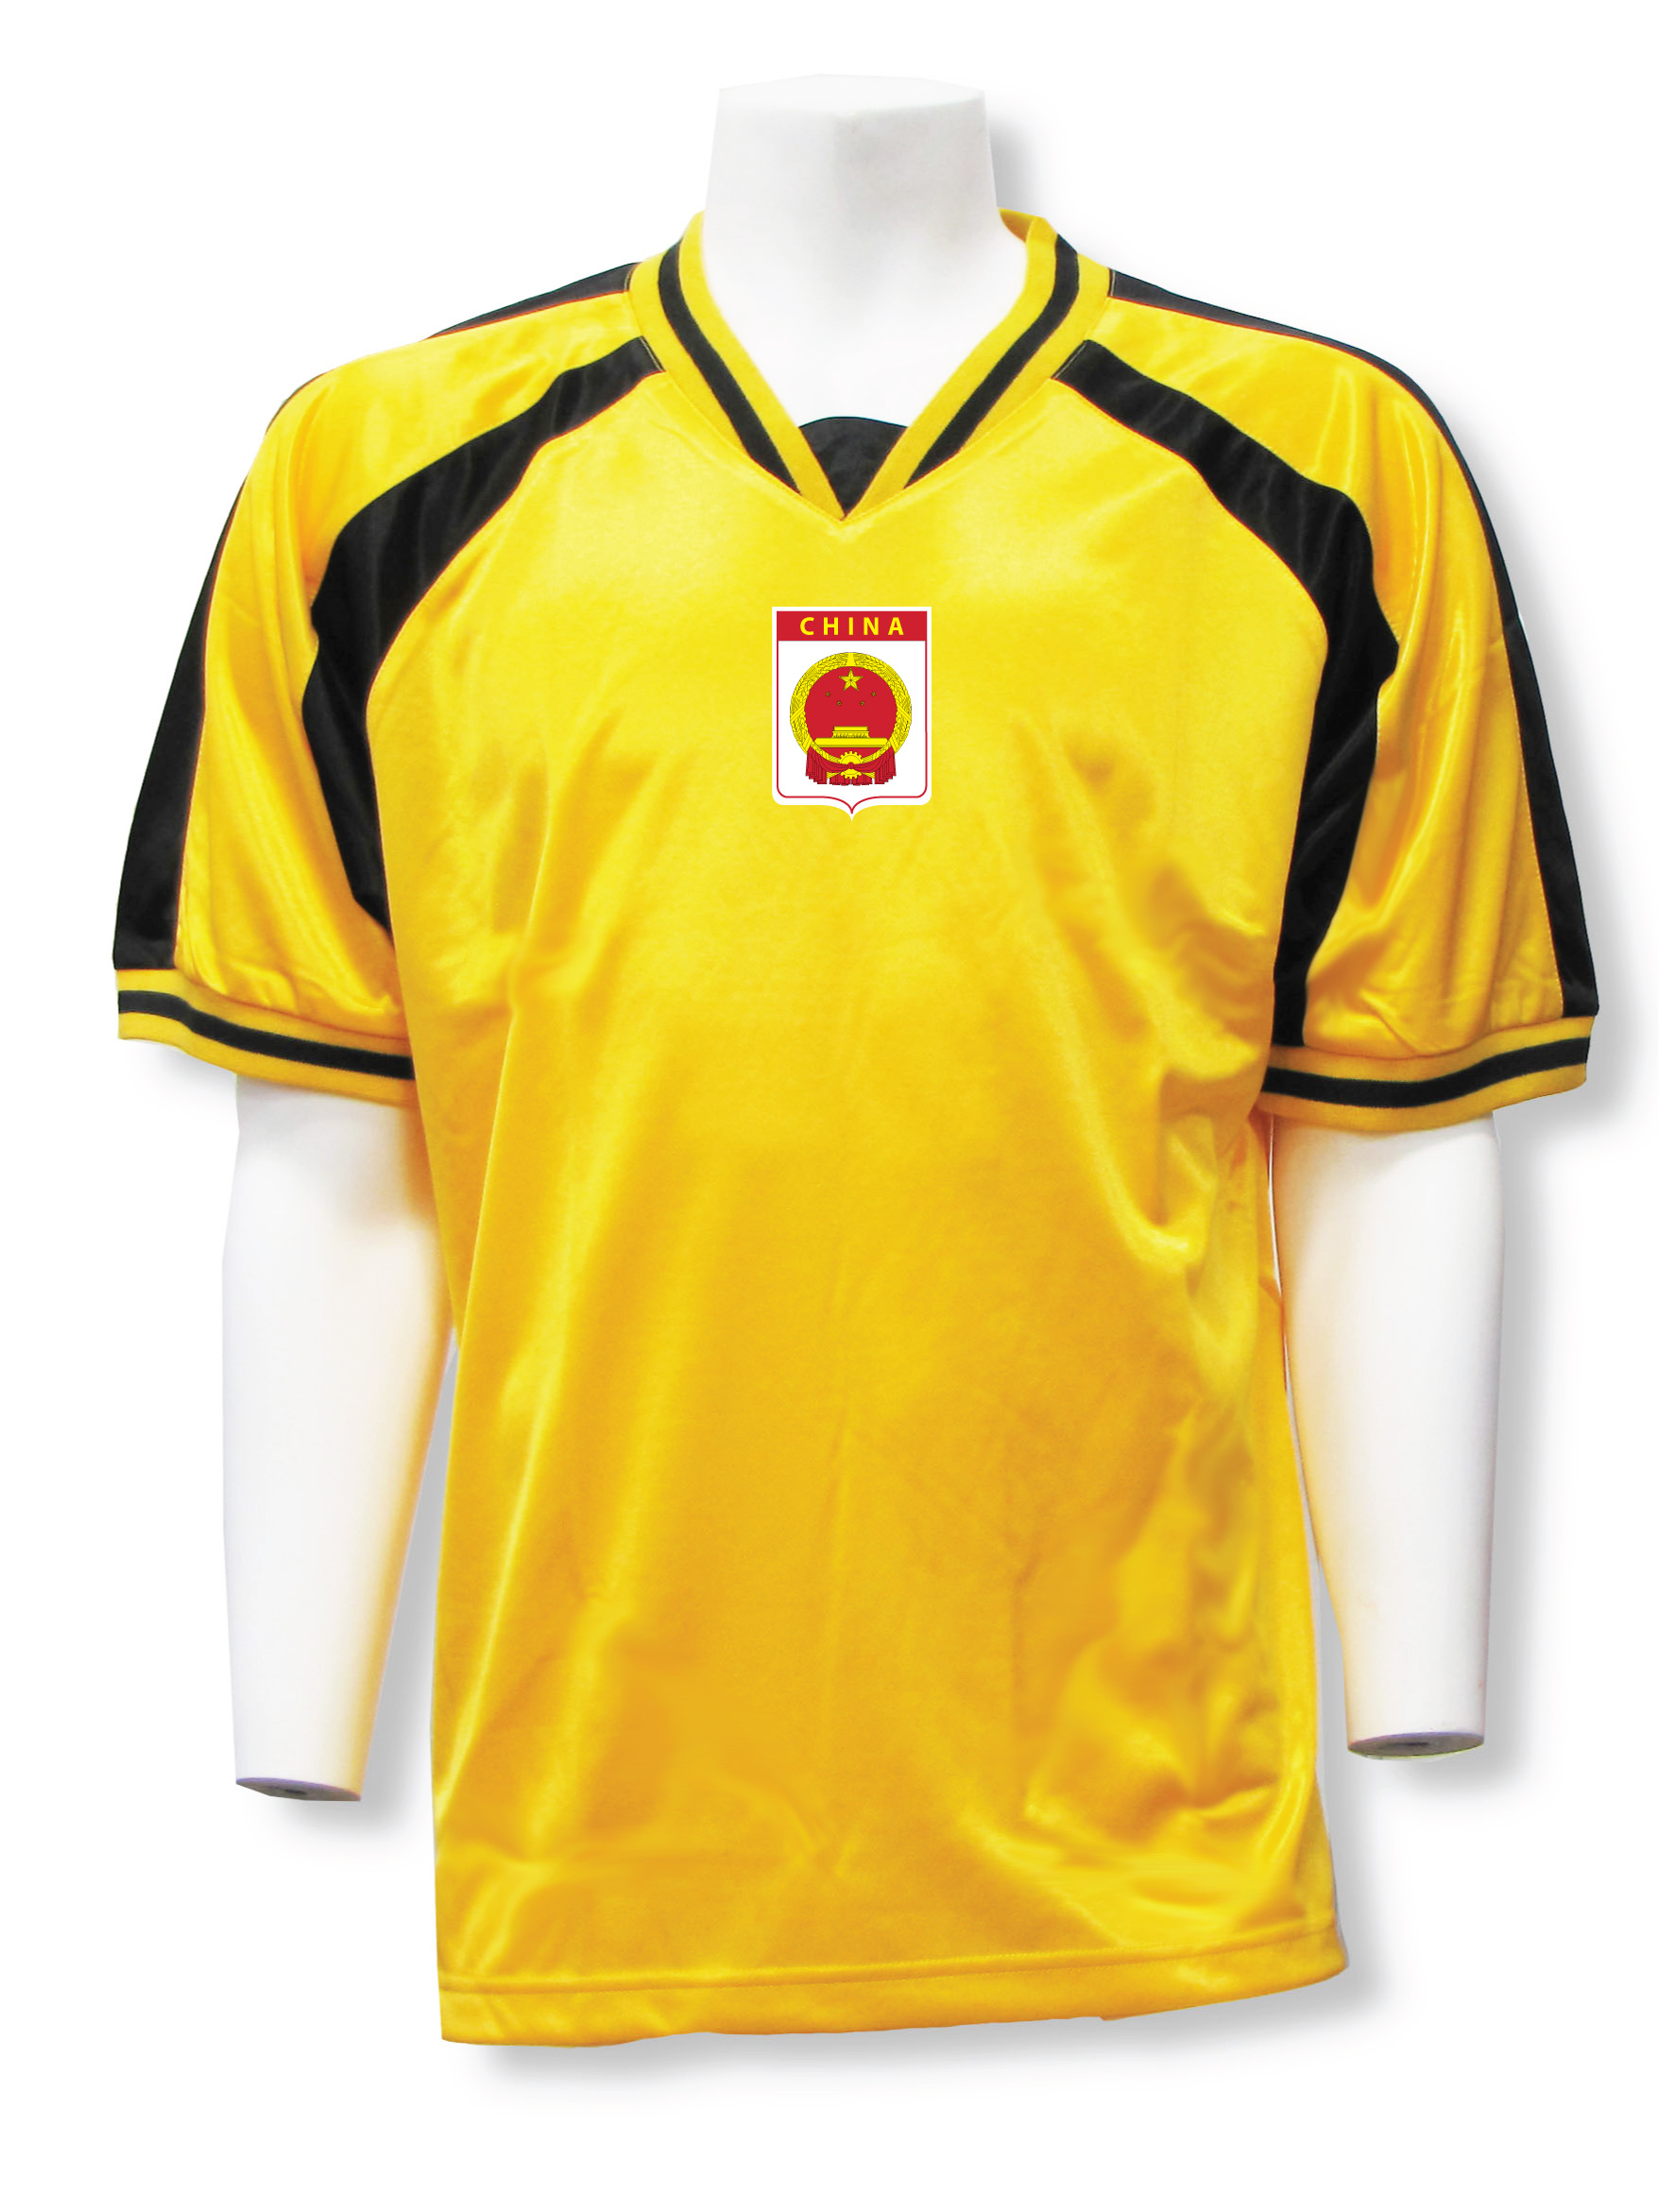 China soccer jersey in gold/black Spitifire